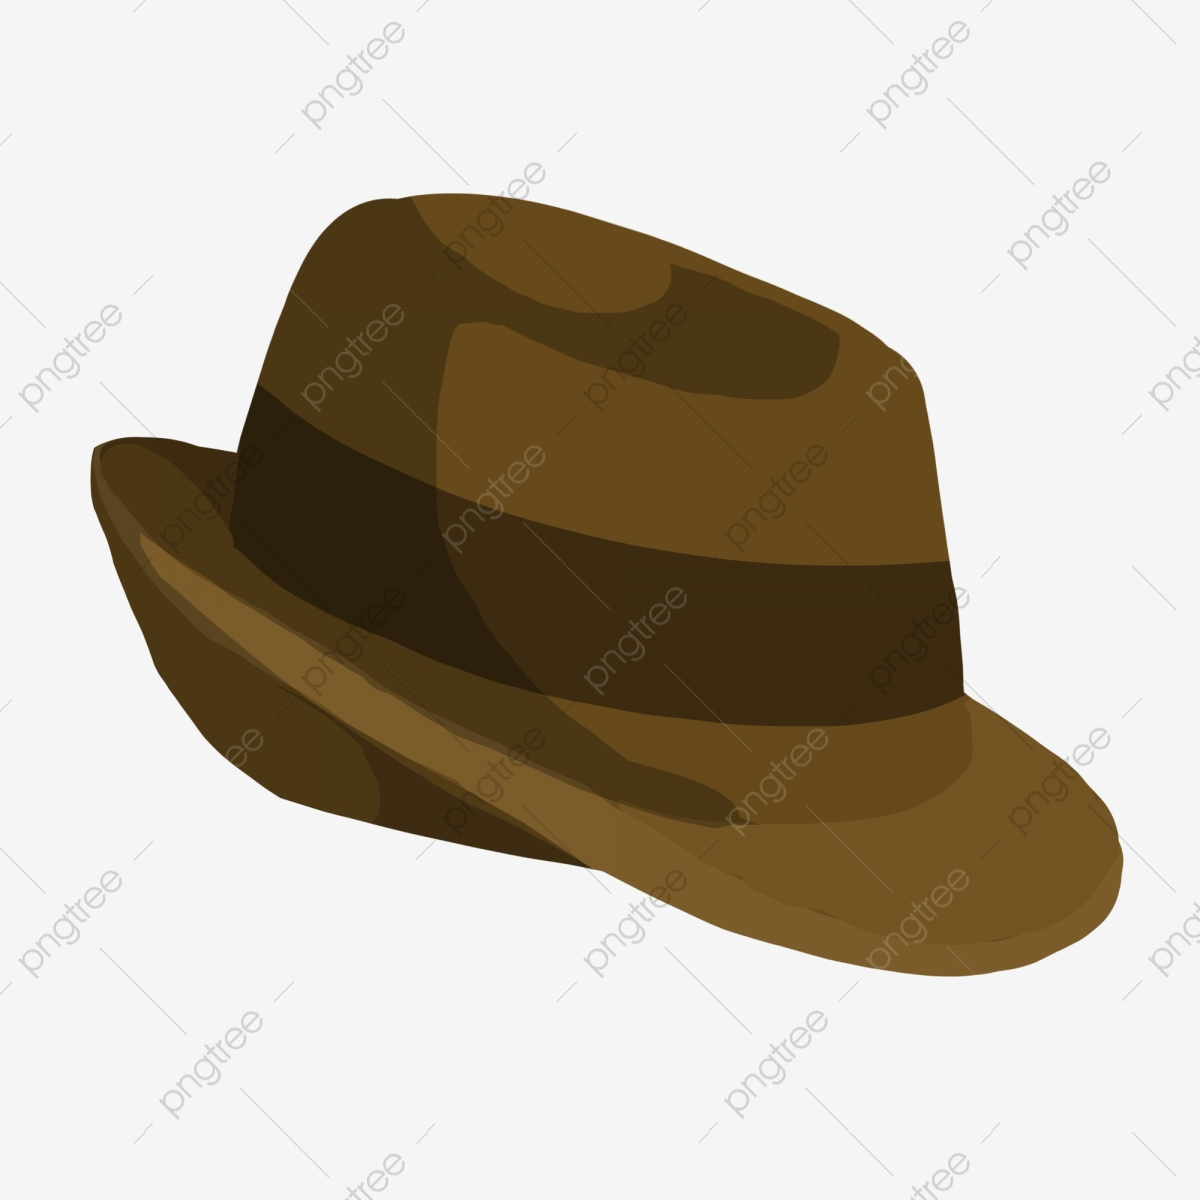 Brown Vintage Men S Detective Hat Decorative Style Minimalist Style Detective Hat Png Transparent Clipart Image And Psd File For Free Download Alibaba.com offers 954 detective hats products. https pngtree com freepng brown vintage men s detective hat 4552935 html